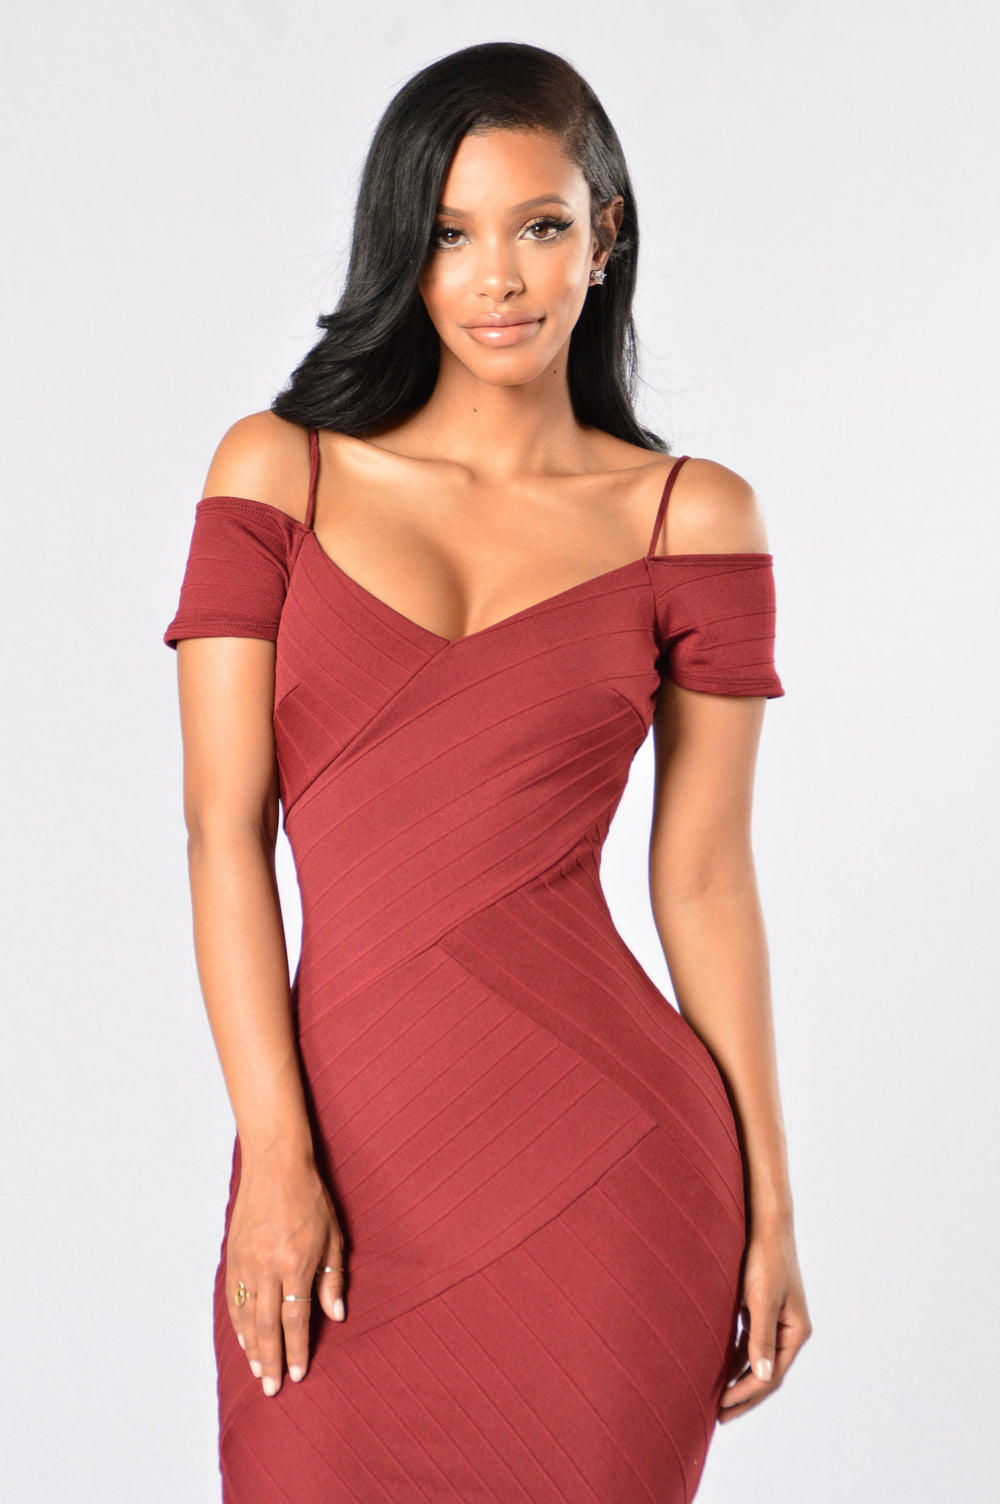 Candlelit Dinner Dress - Burgundy